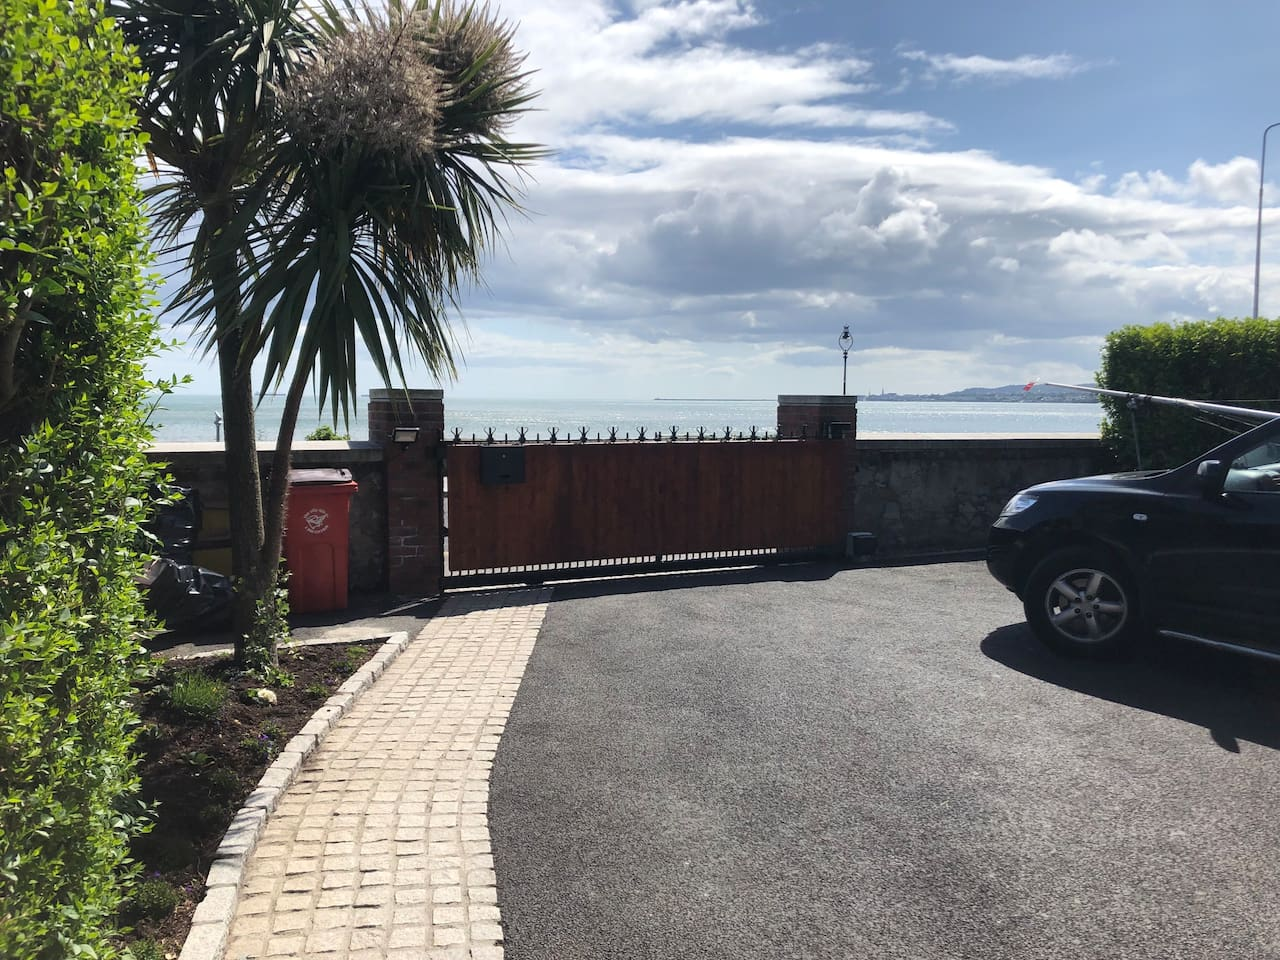 Apartment front entrance gate, with direct access to Dublin Bay